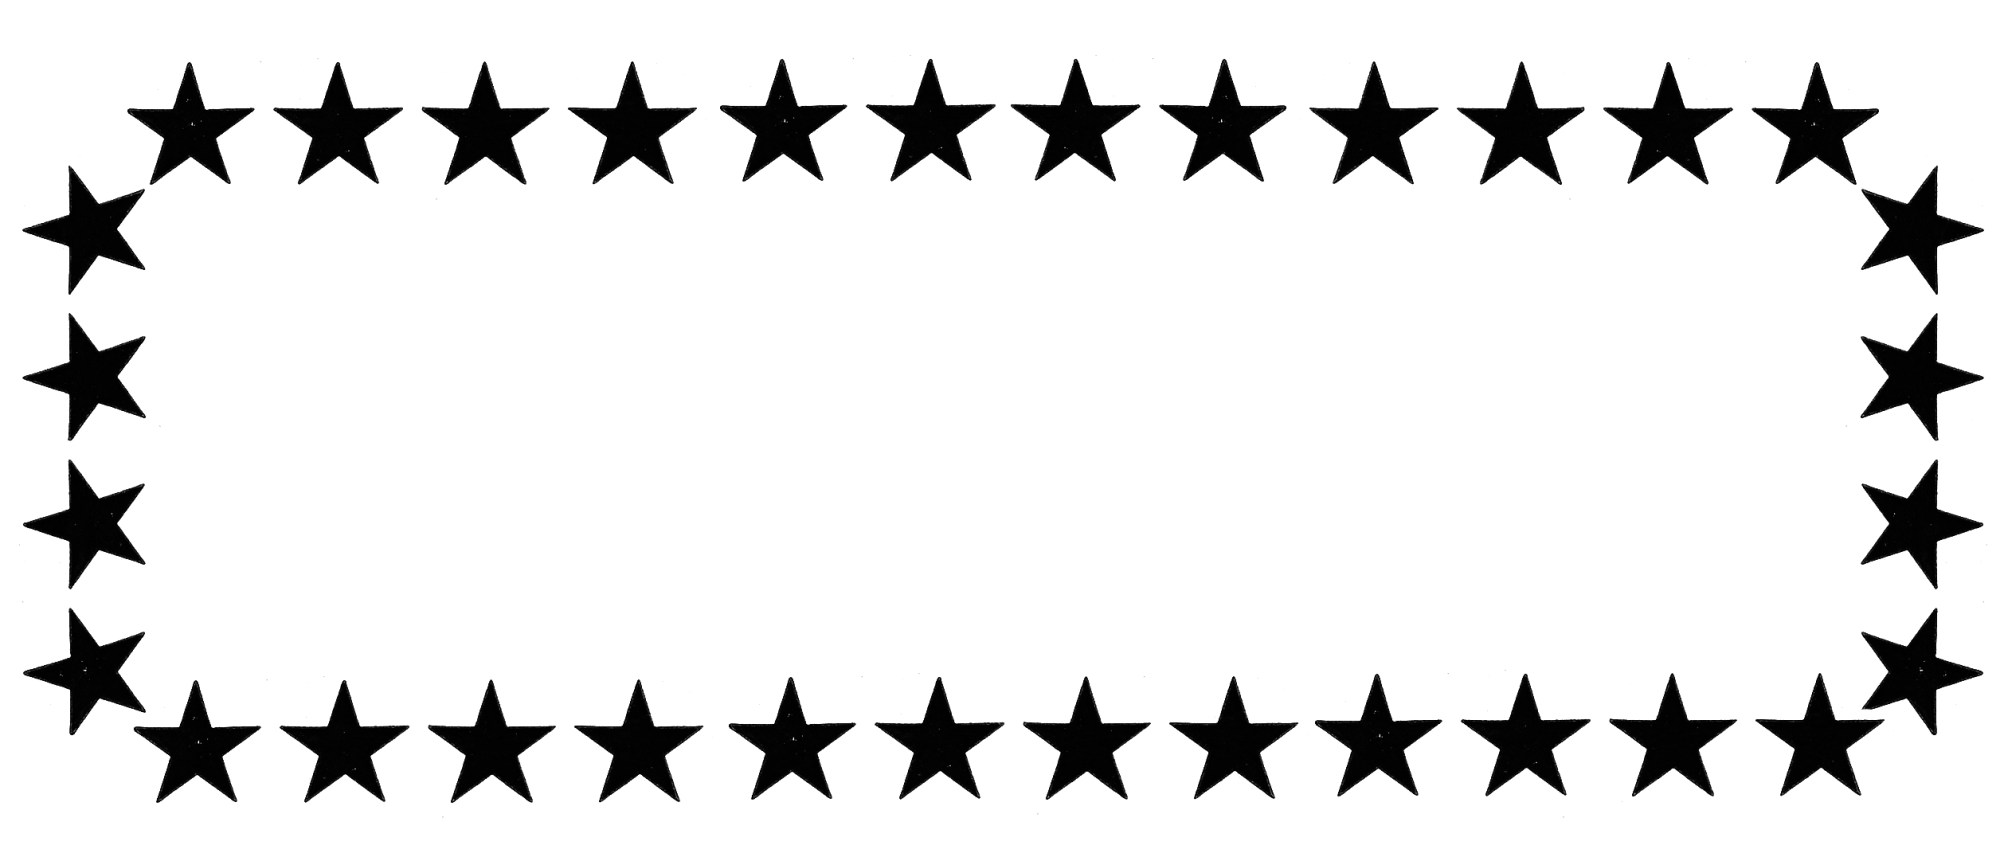 hight resolution of there are also four of the same clipart stars in each of the corners on this one i think it would make a cute label or perhaps you could use it as gift tag